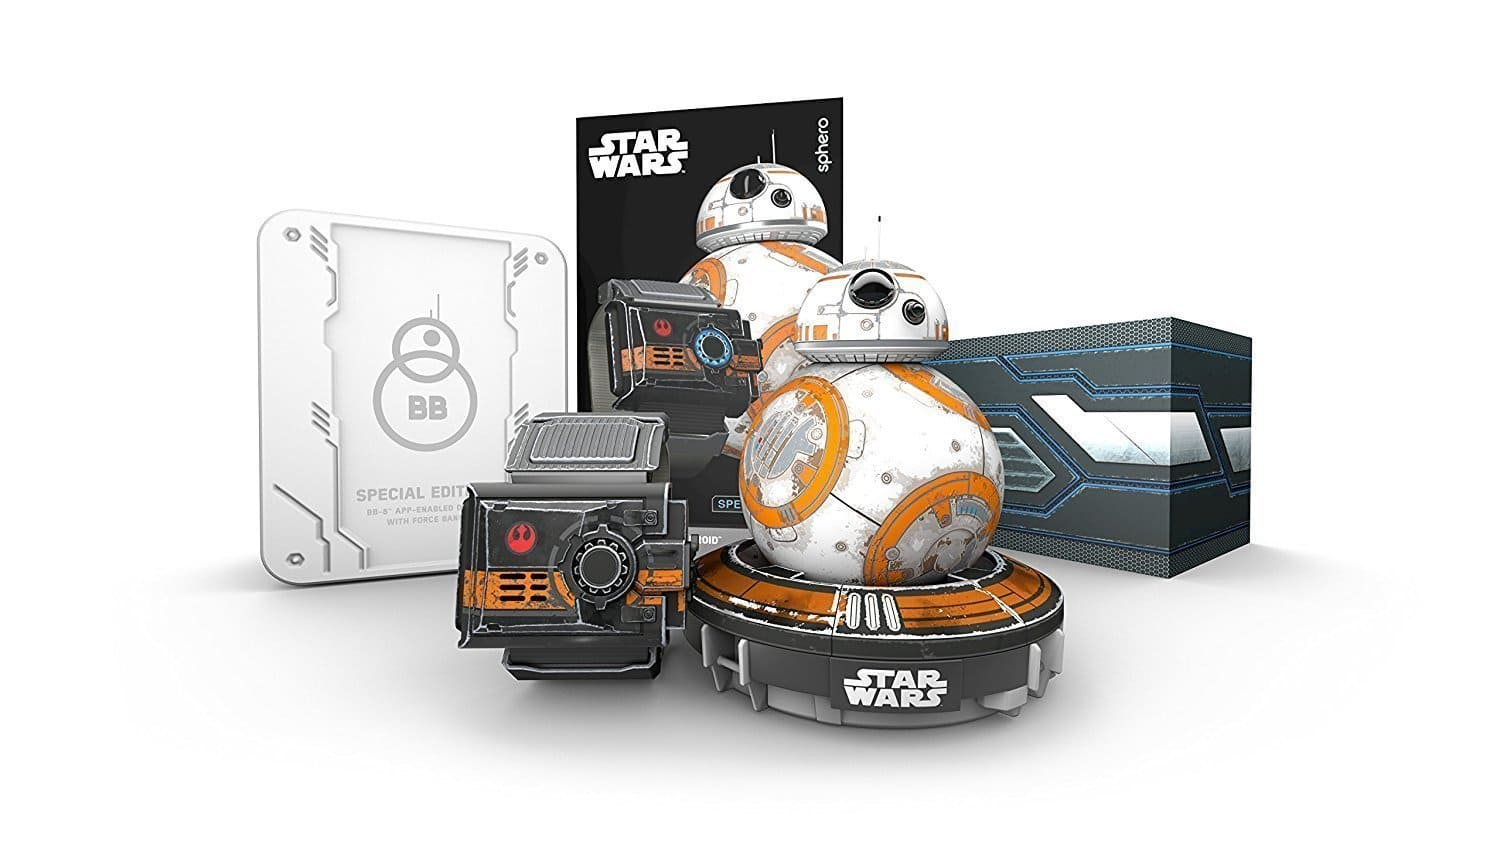 Sphero R001SUS Star Wars BB-8 App Controlled Robot with Star Wars Force Band for $79.99 @amazon as deal of the day